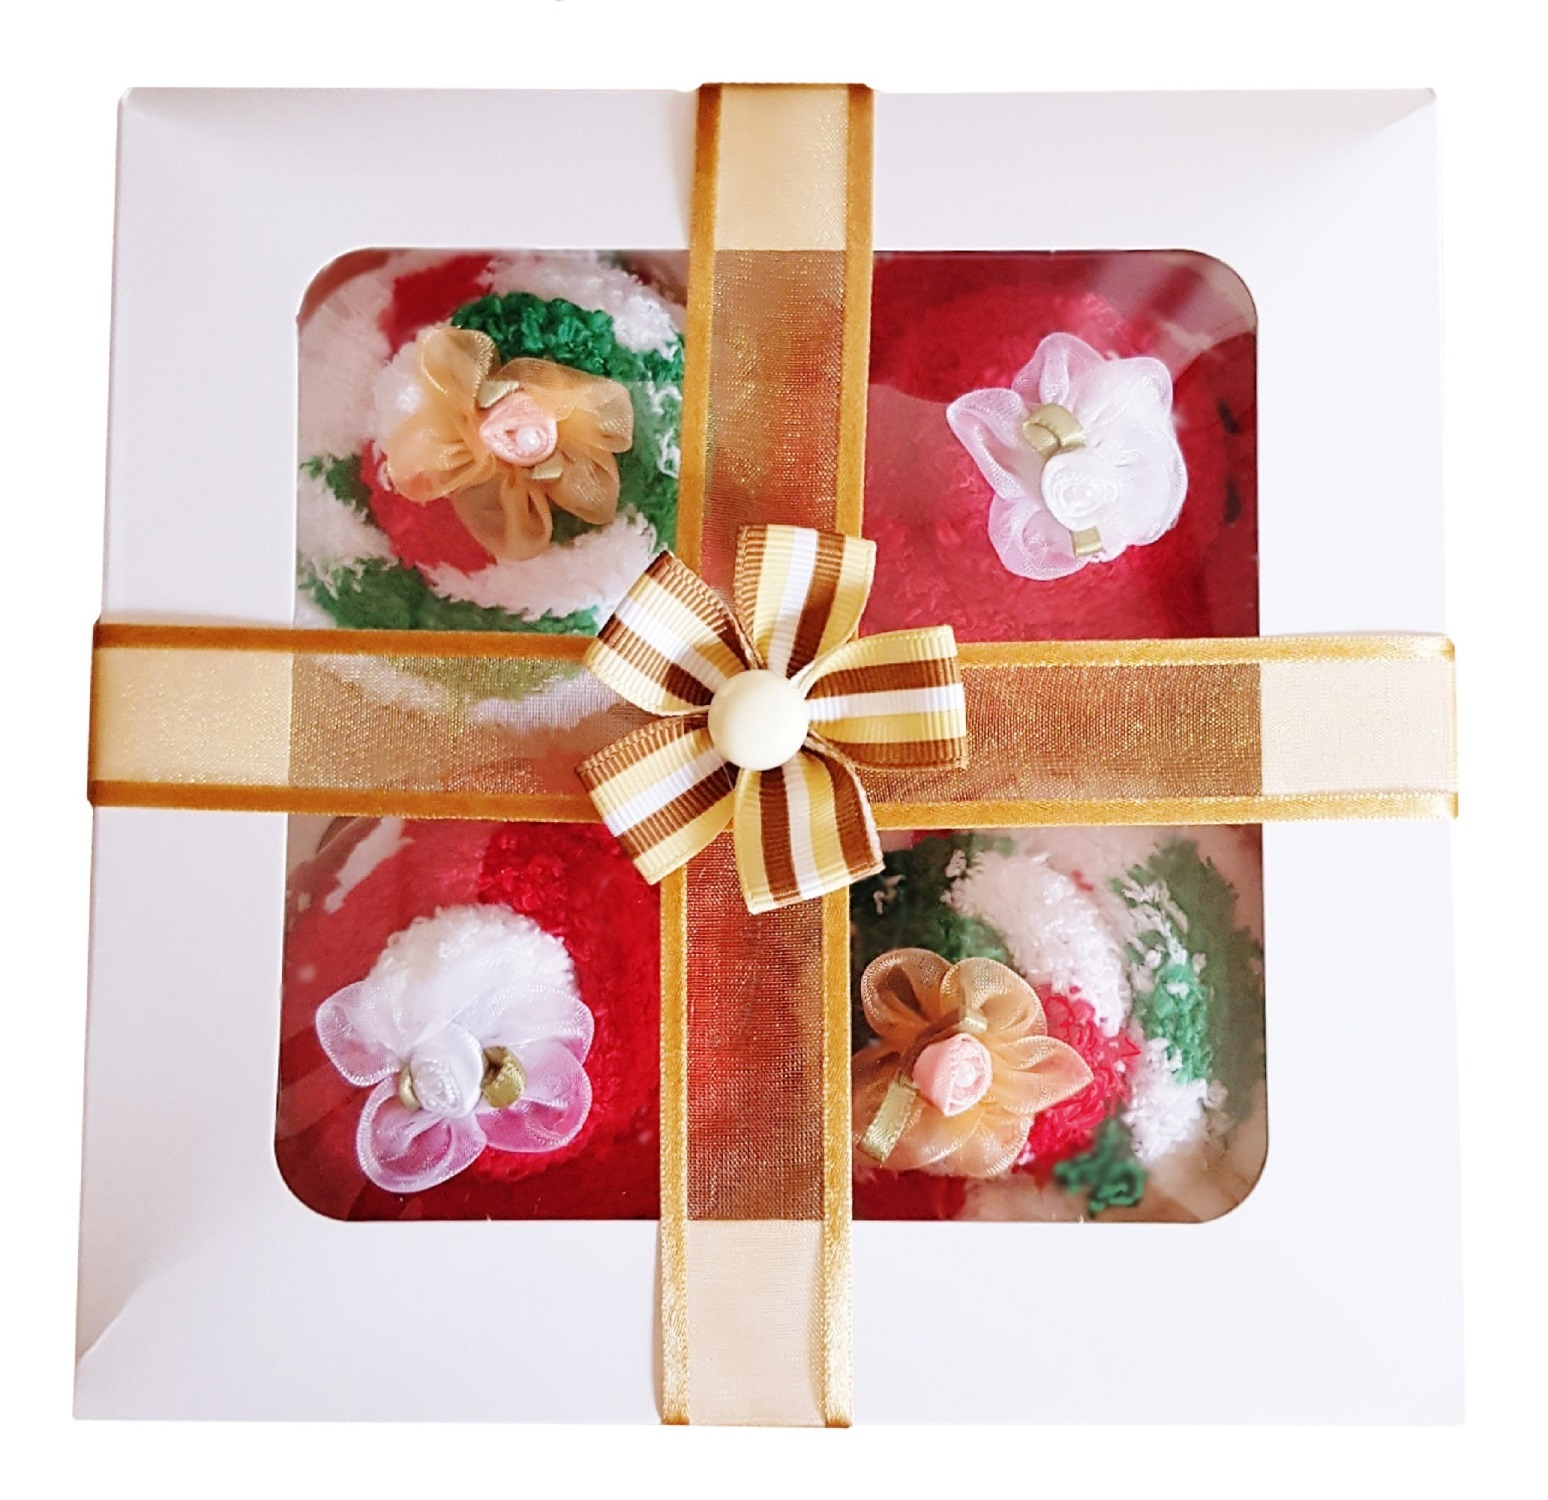 Women's ' Christmas Cozy Sock' Cupcakes, Gold Ribbon Gift Box